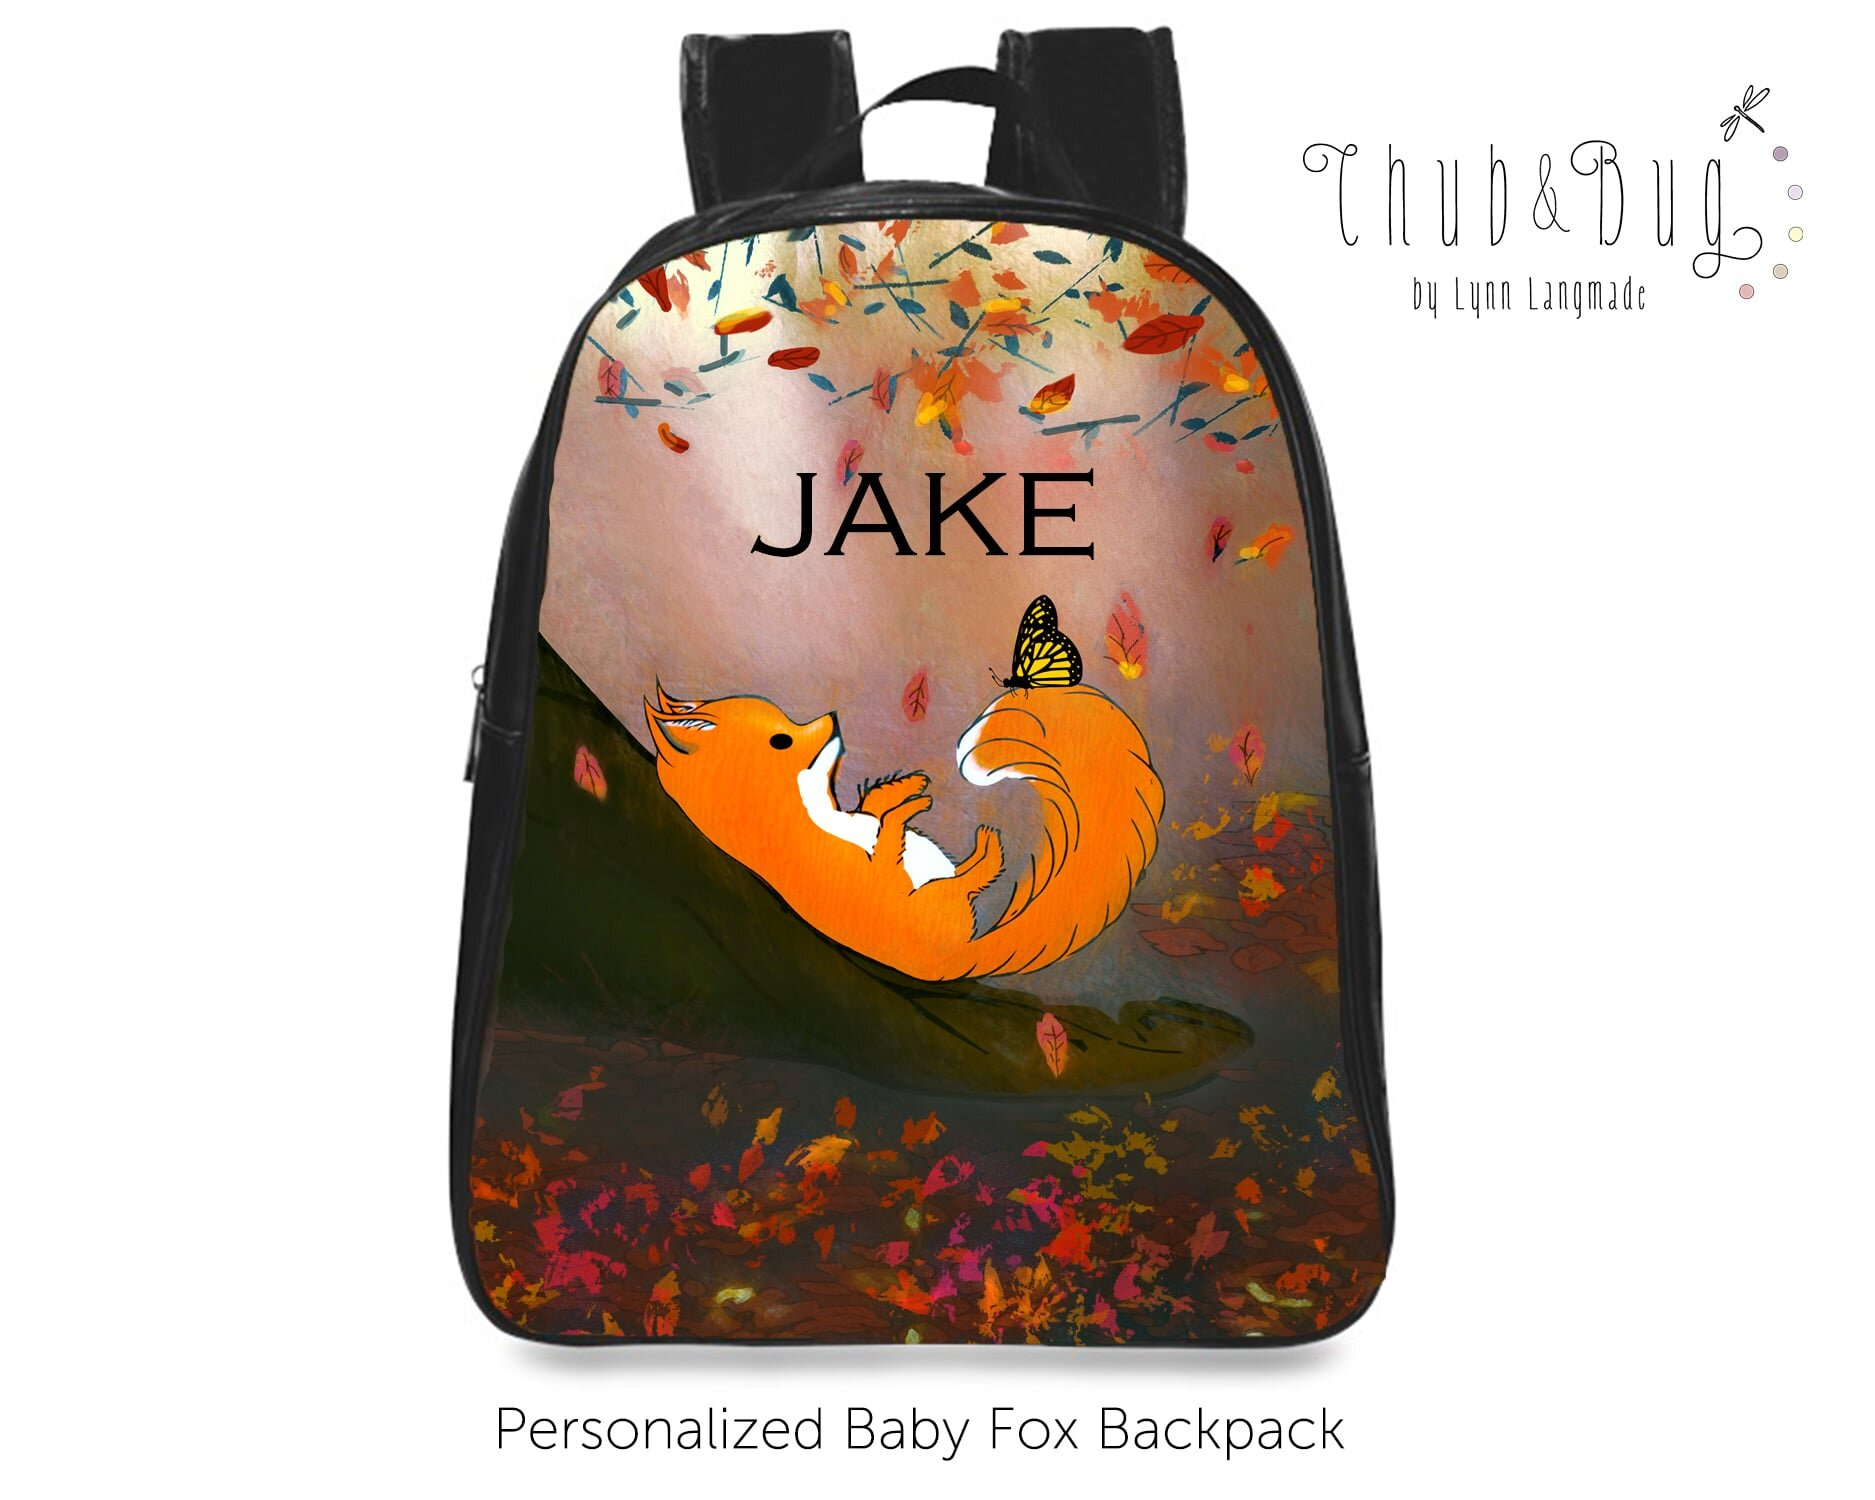 Personalized baby backpack.